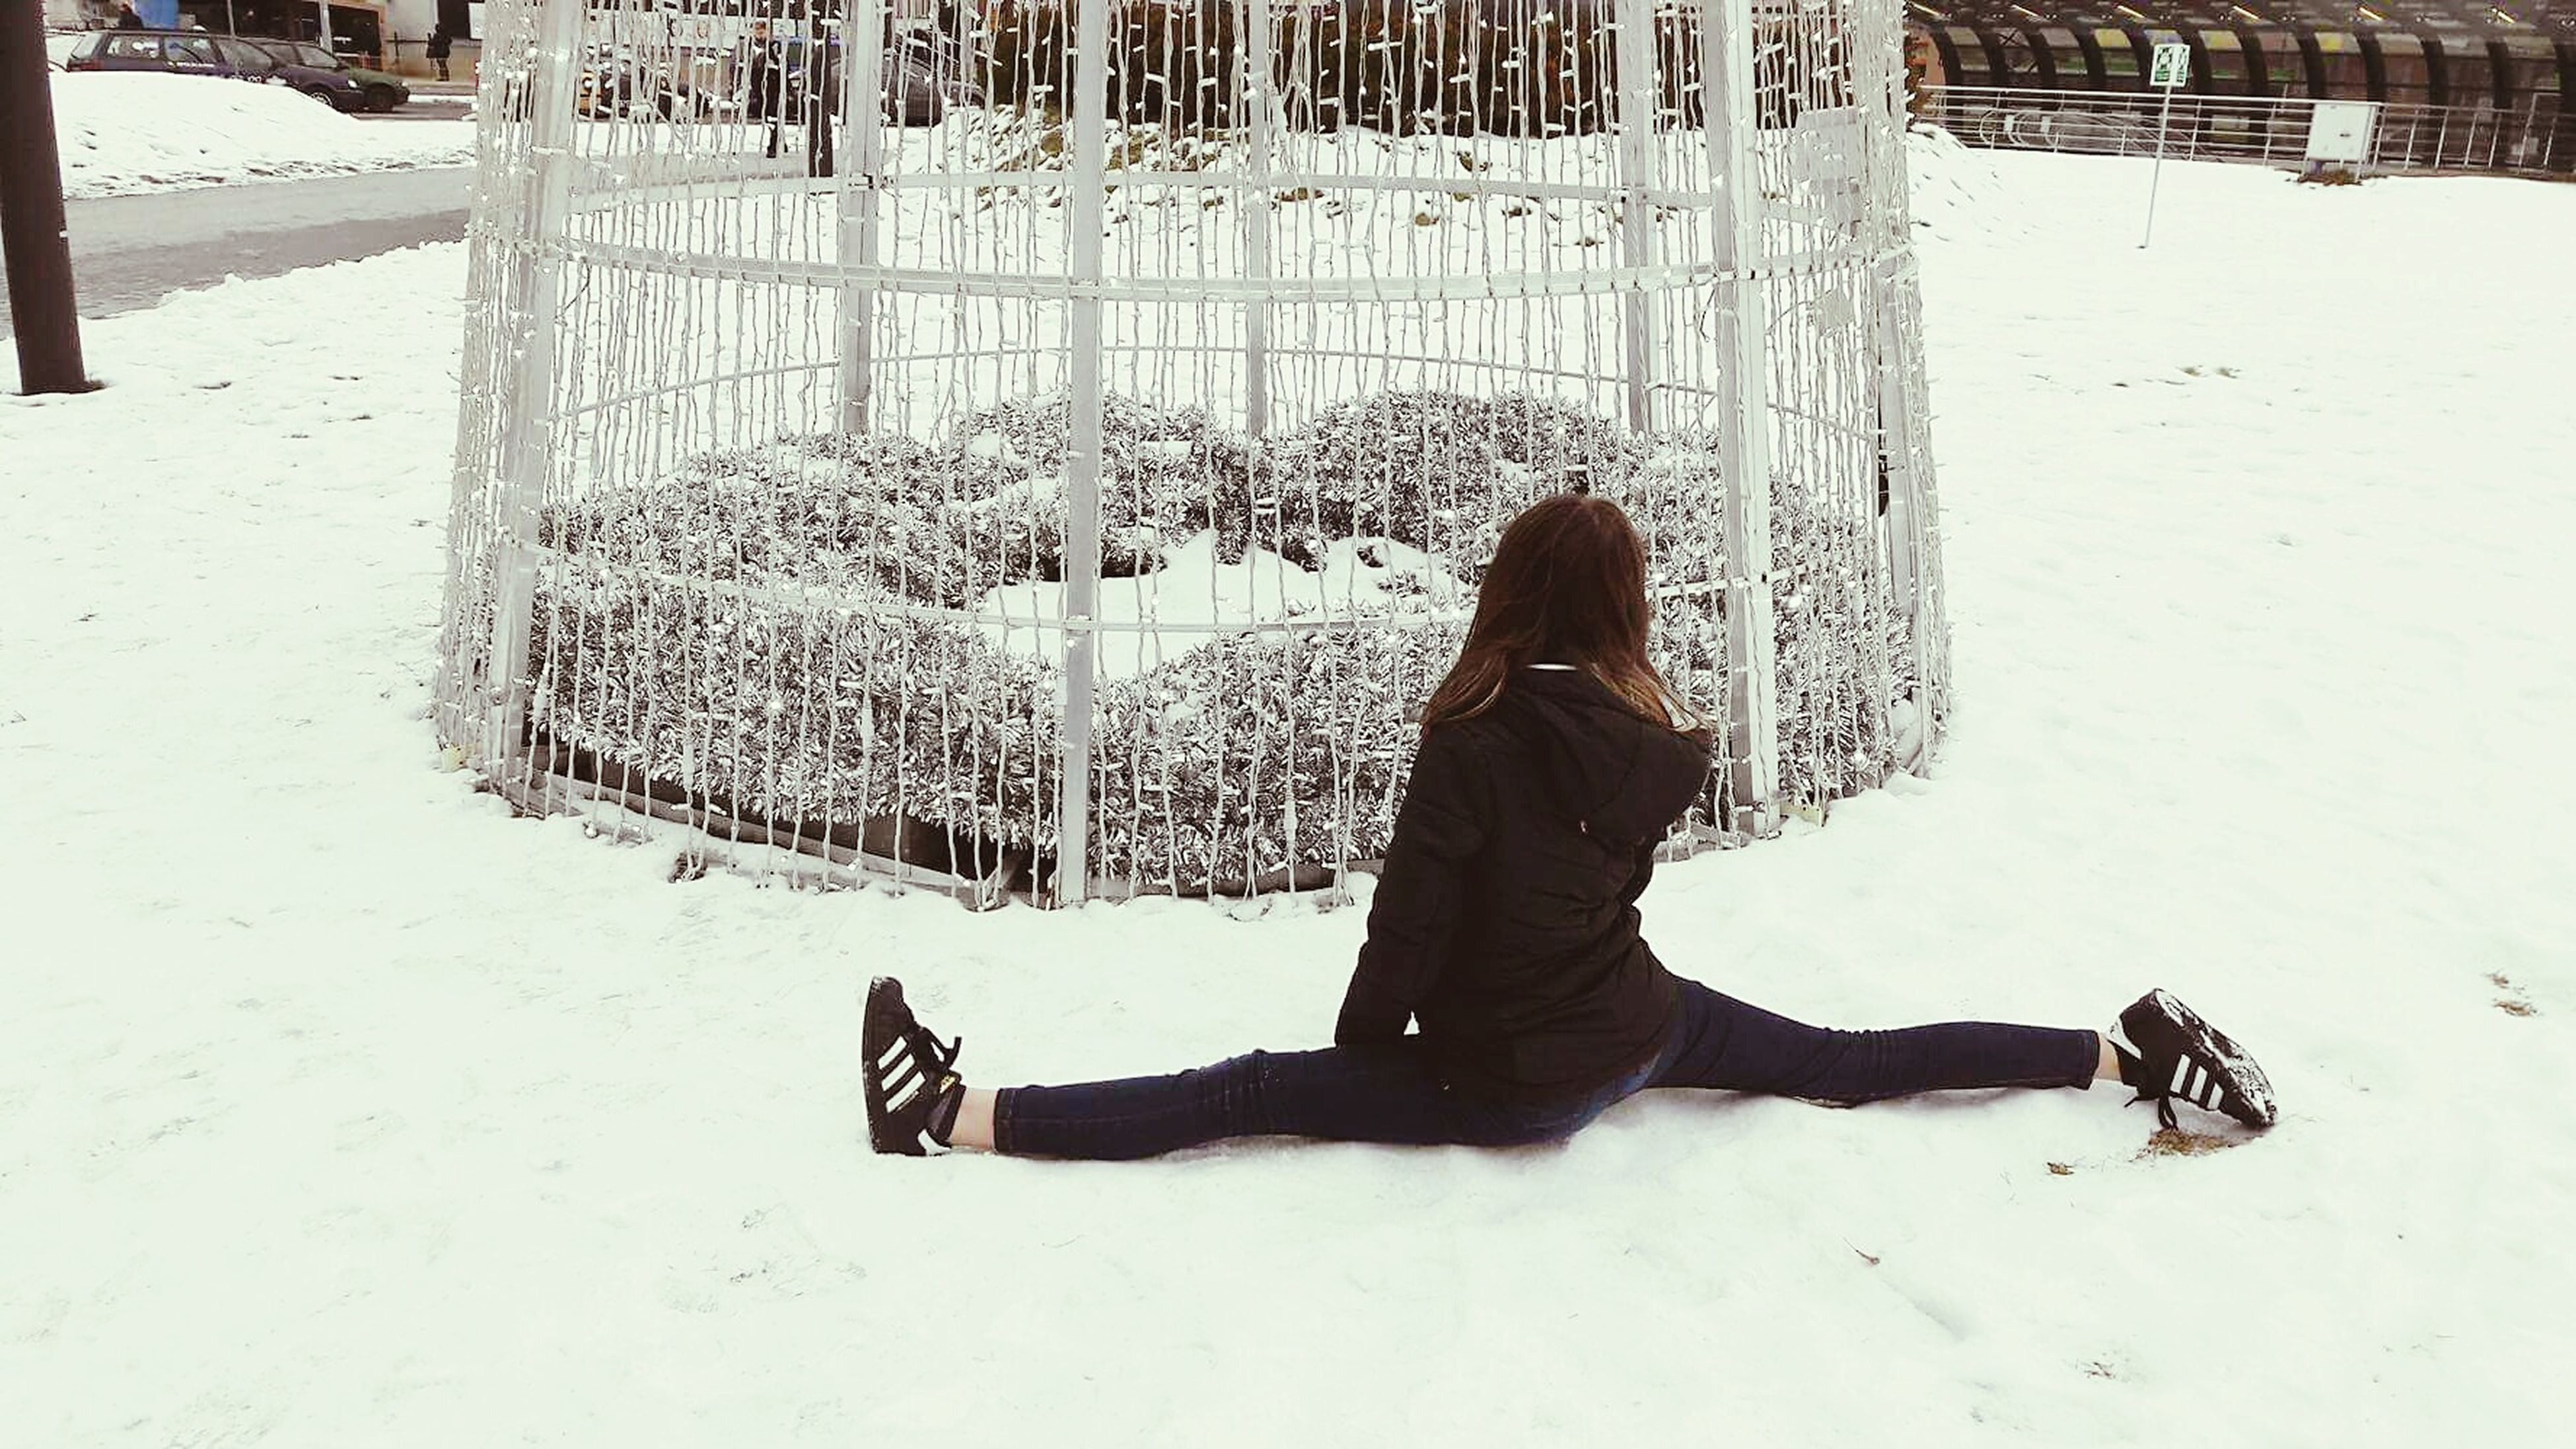 winter, snow, one person, full length, cold temperature, day, leisure activity, real people, outdoors, nature, beauty in nature, one woman only, warm clothing, people, only women, adults only, adult